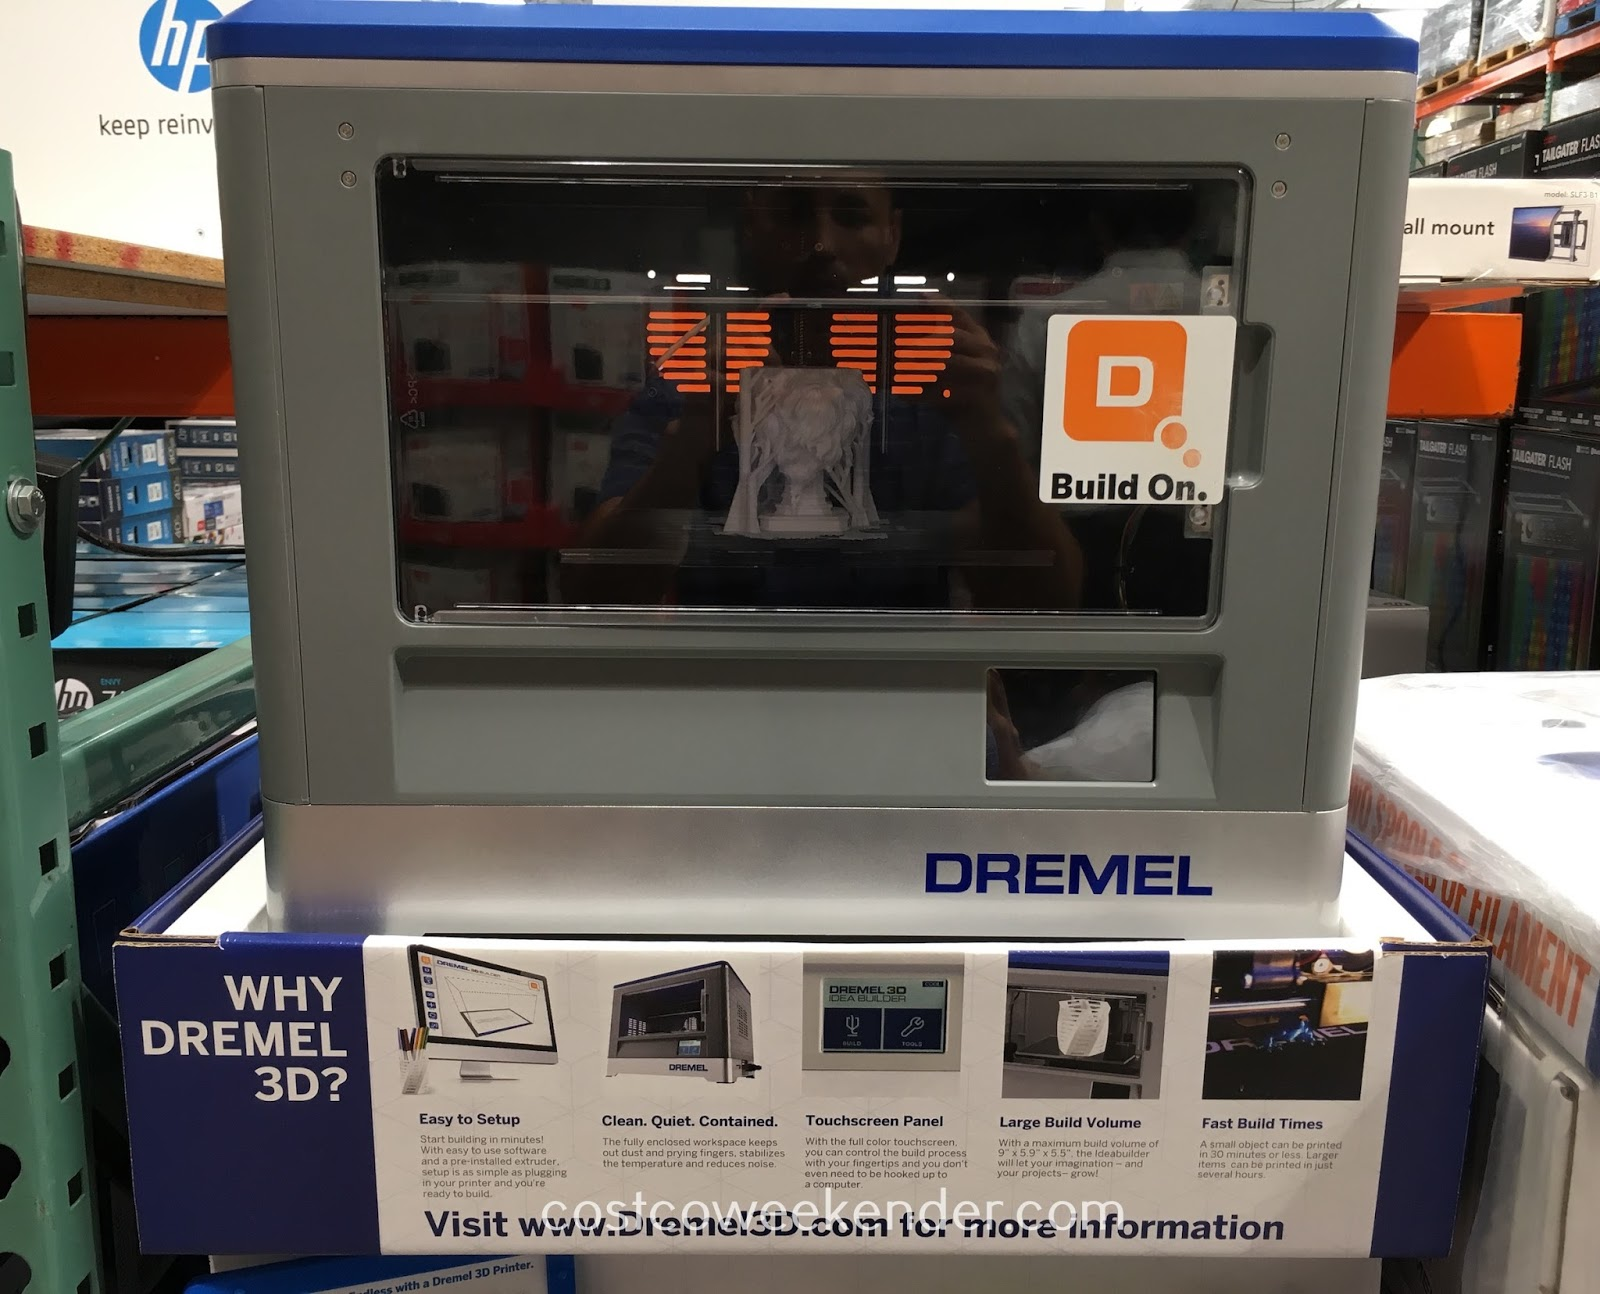 Location Dremel Dremel Idea Builder 3d Printer Costco Weekender